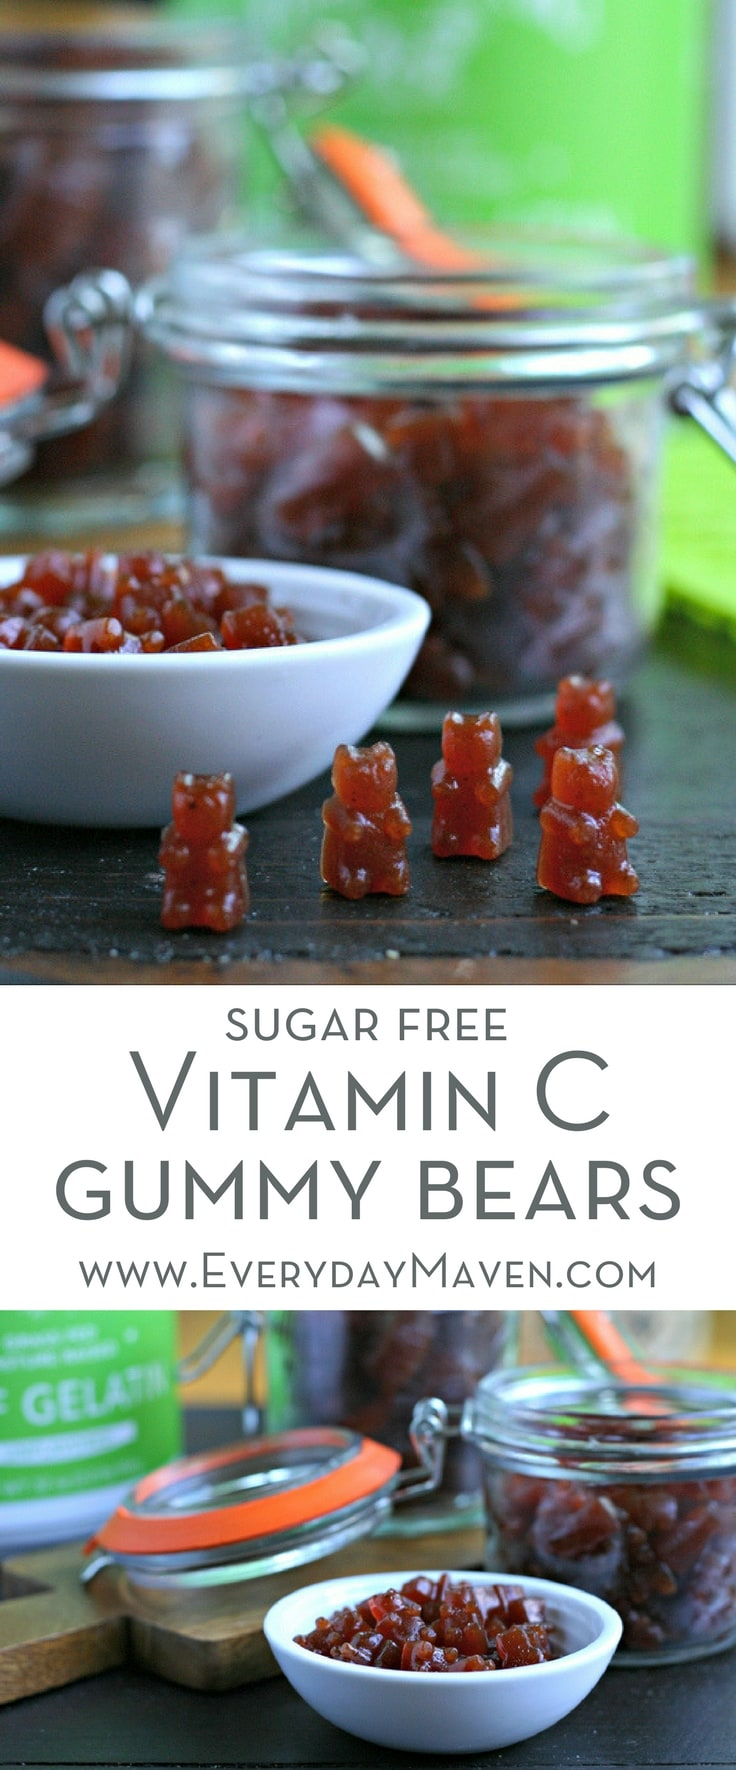 These Sugar Free Vitamin C Gummy Bears are the perfect way to give your immune system a boost during sick season. Perfect for little and big kids alike!